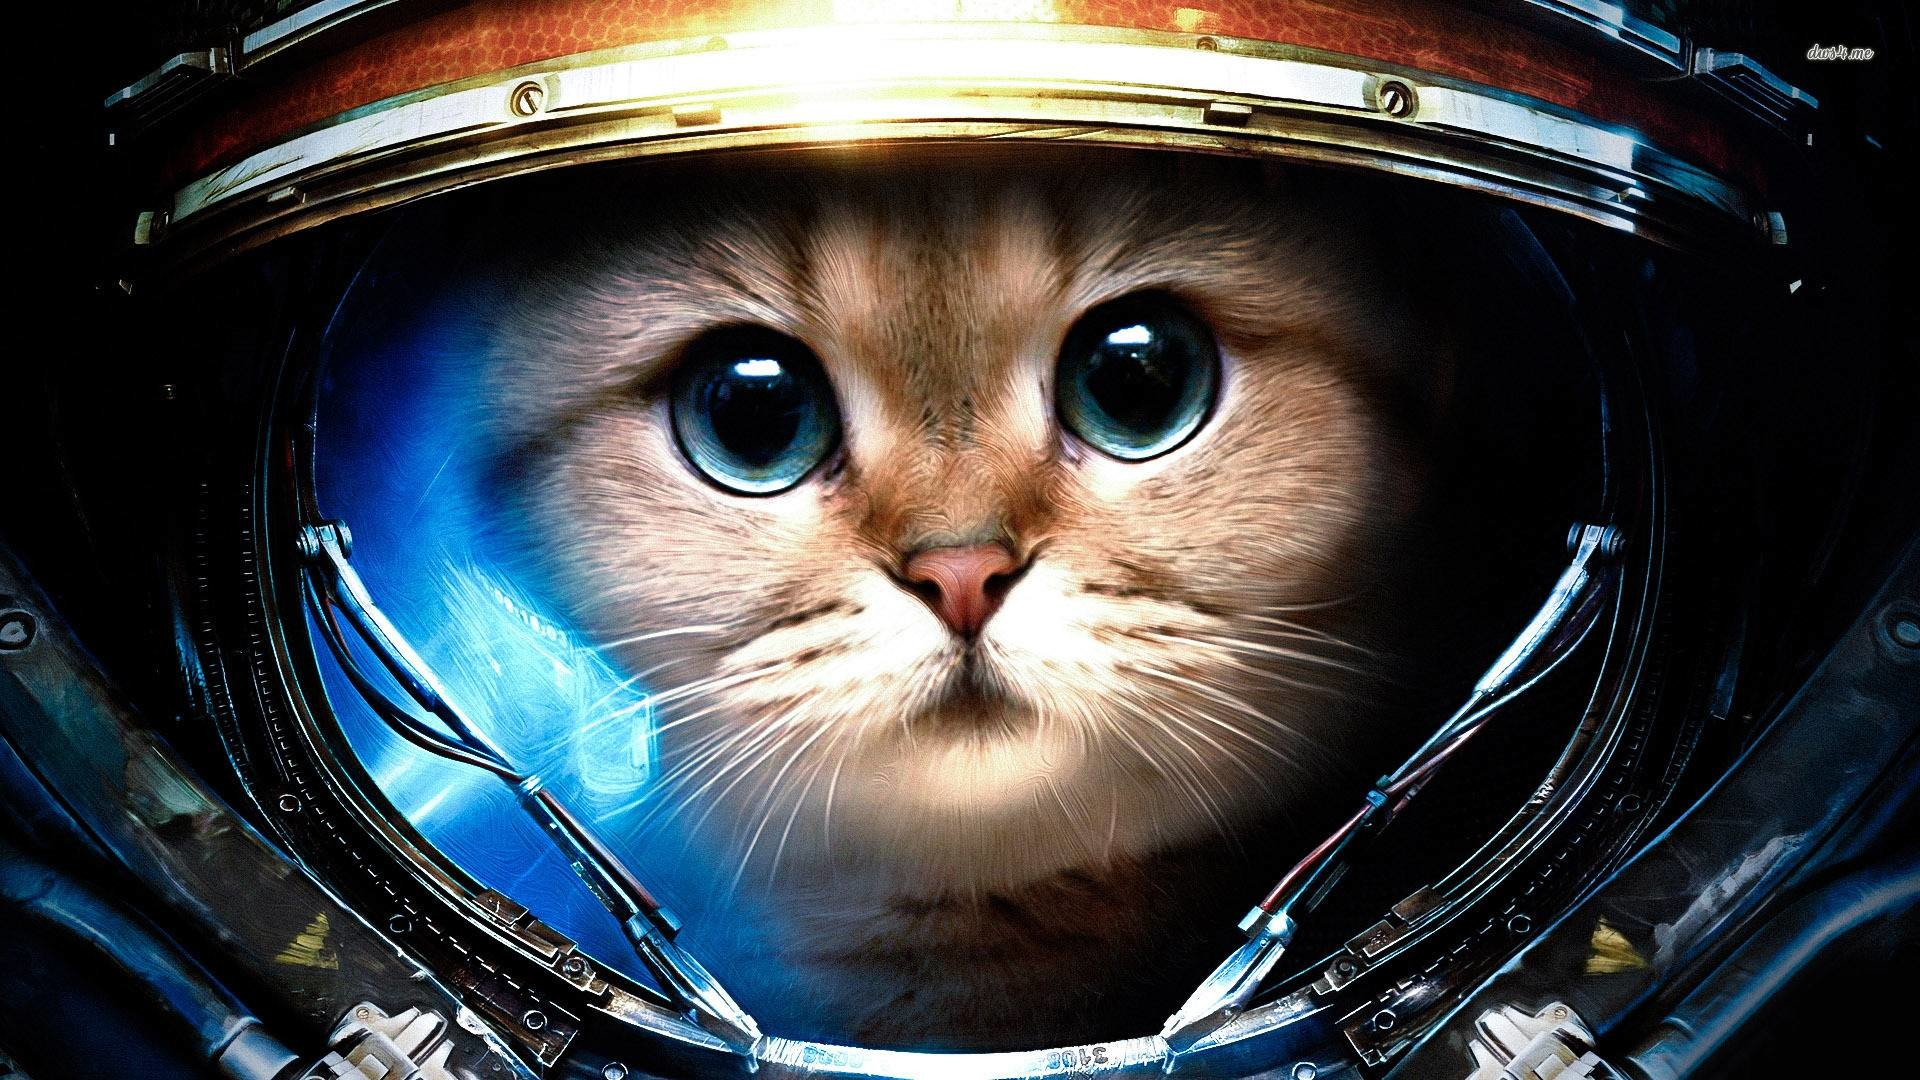 SPACE CAT, He is going to be the first cat to walk on the moon